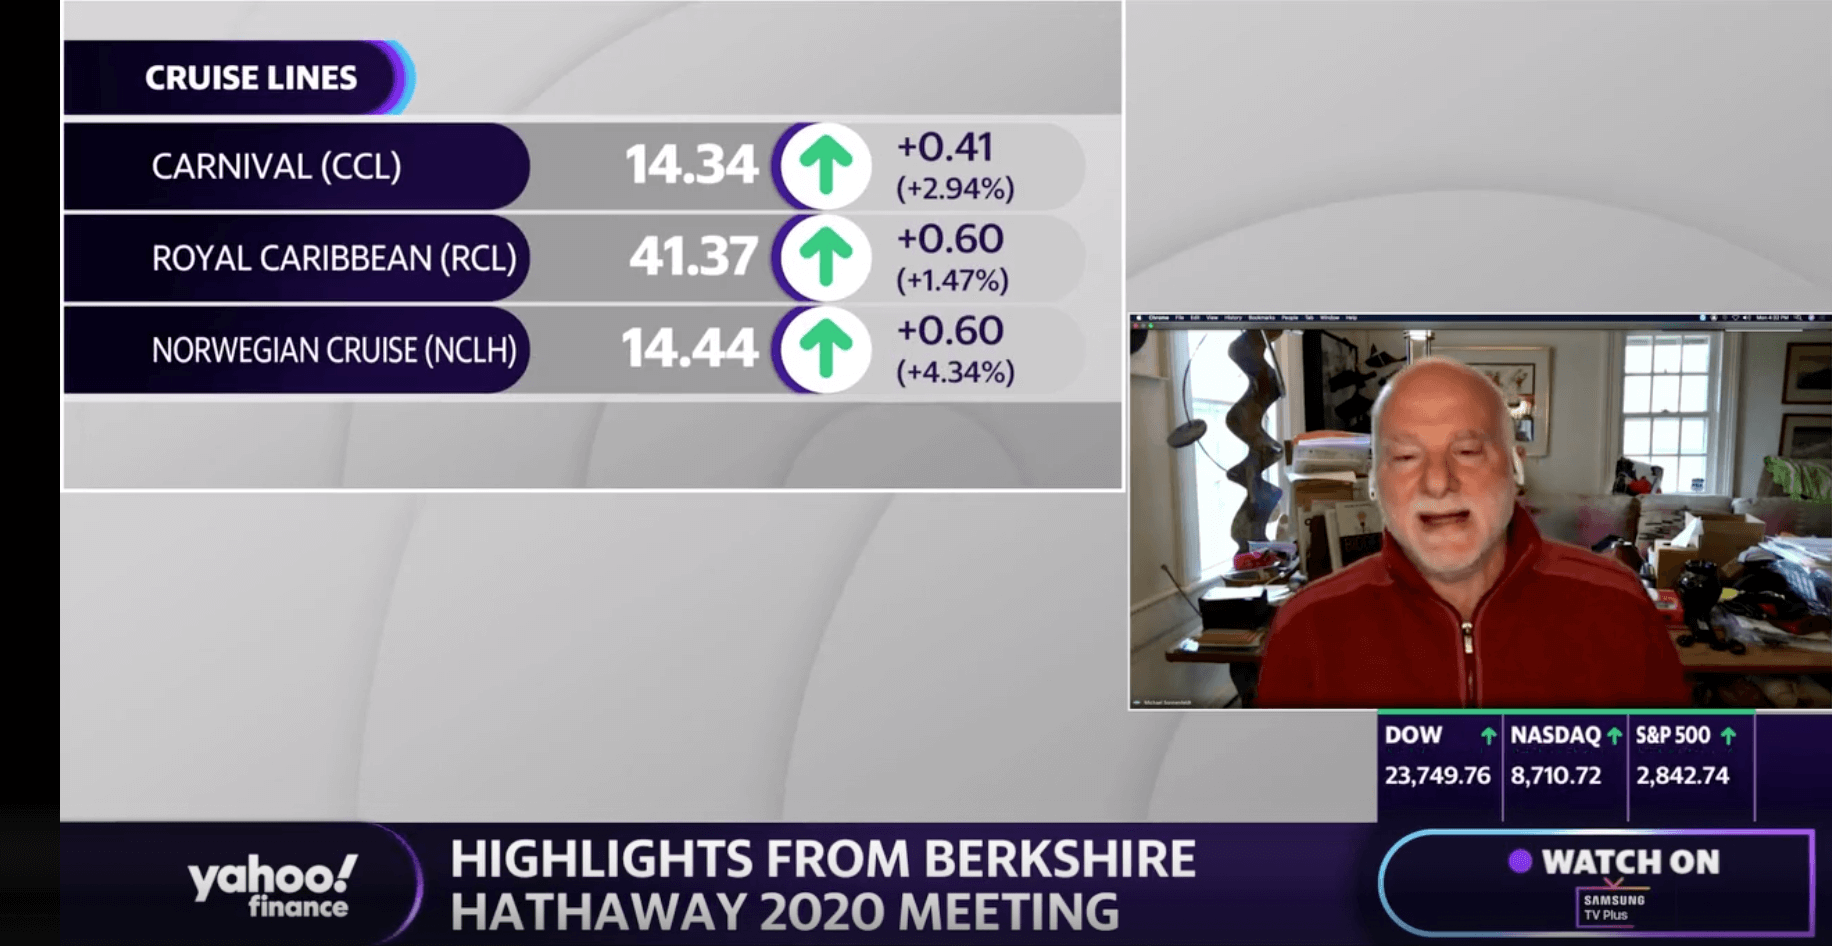 BERKSHIRE HATHAWAY ANNUAL SHAREHOLDERS MEETING: YAHOO! FINANCE INTERVIEWS TIGER 21 FOUNDER ON REACTIONS